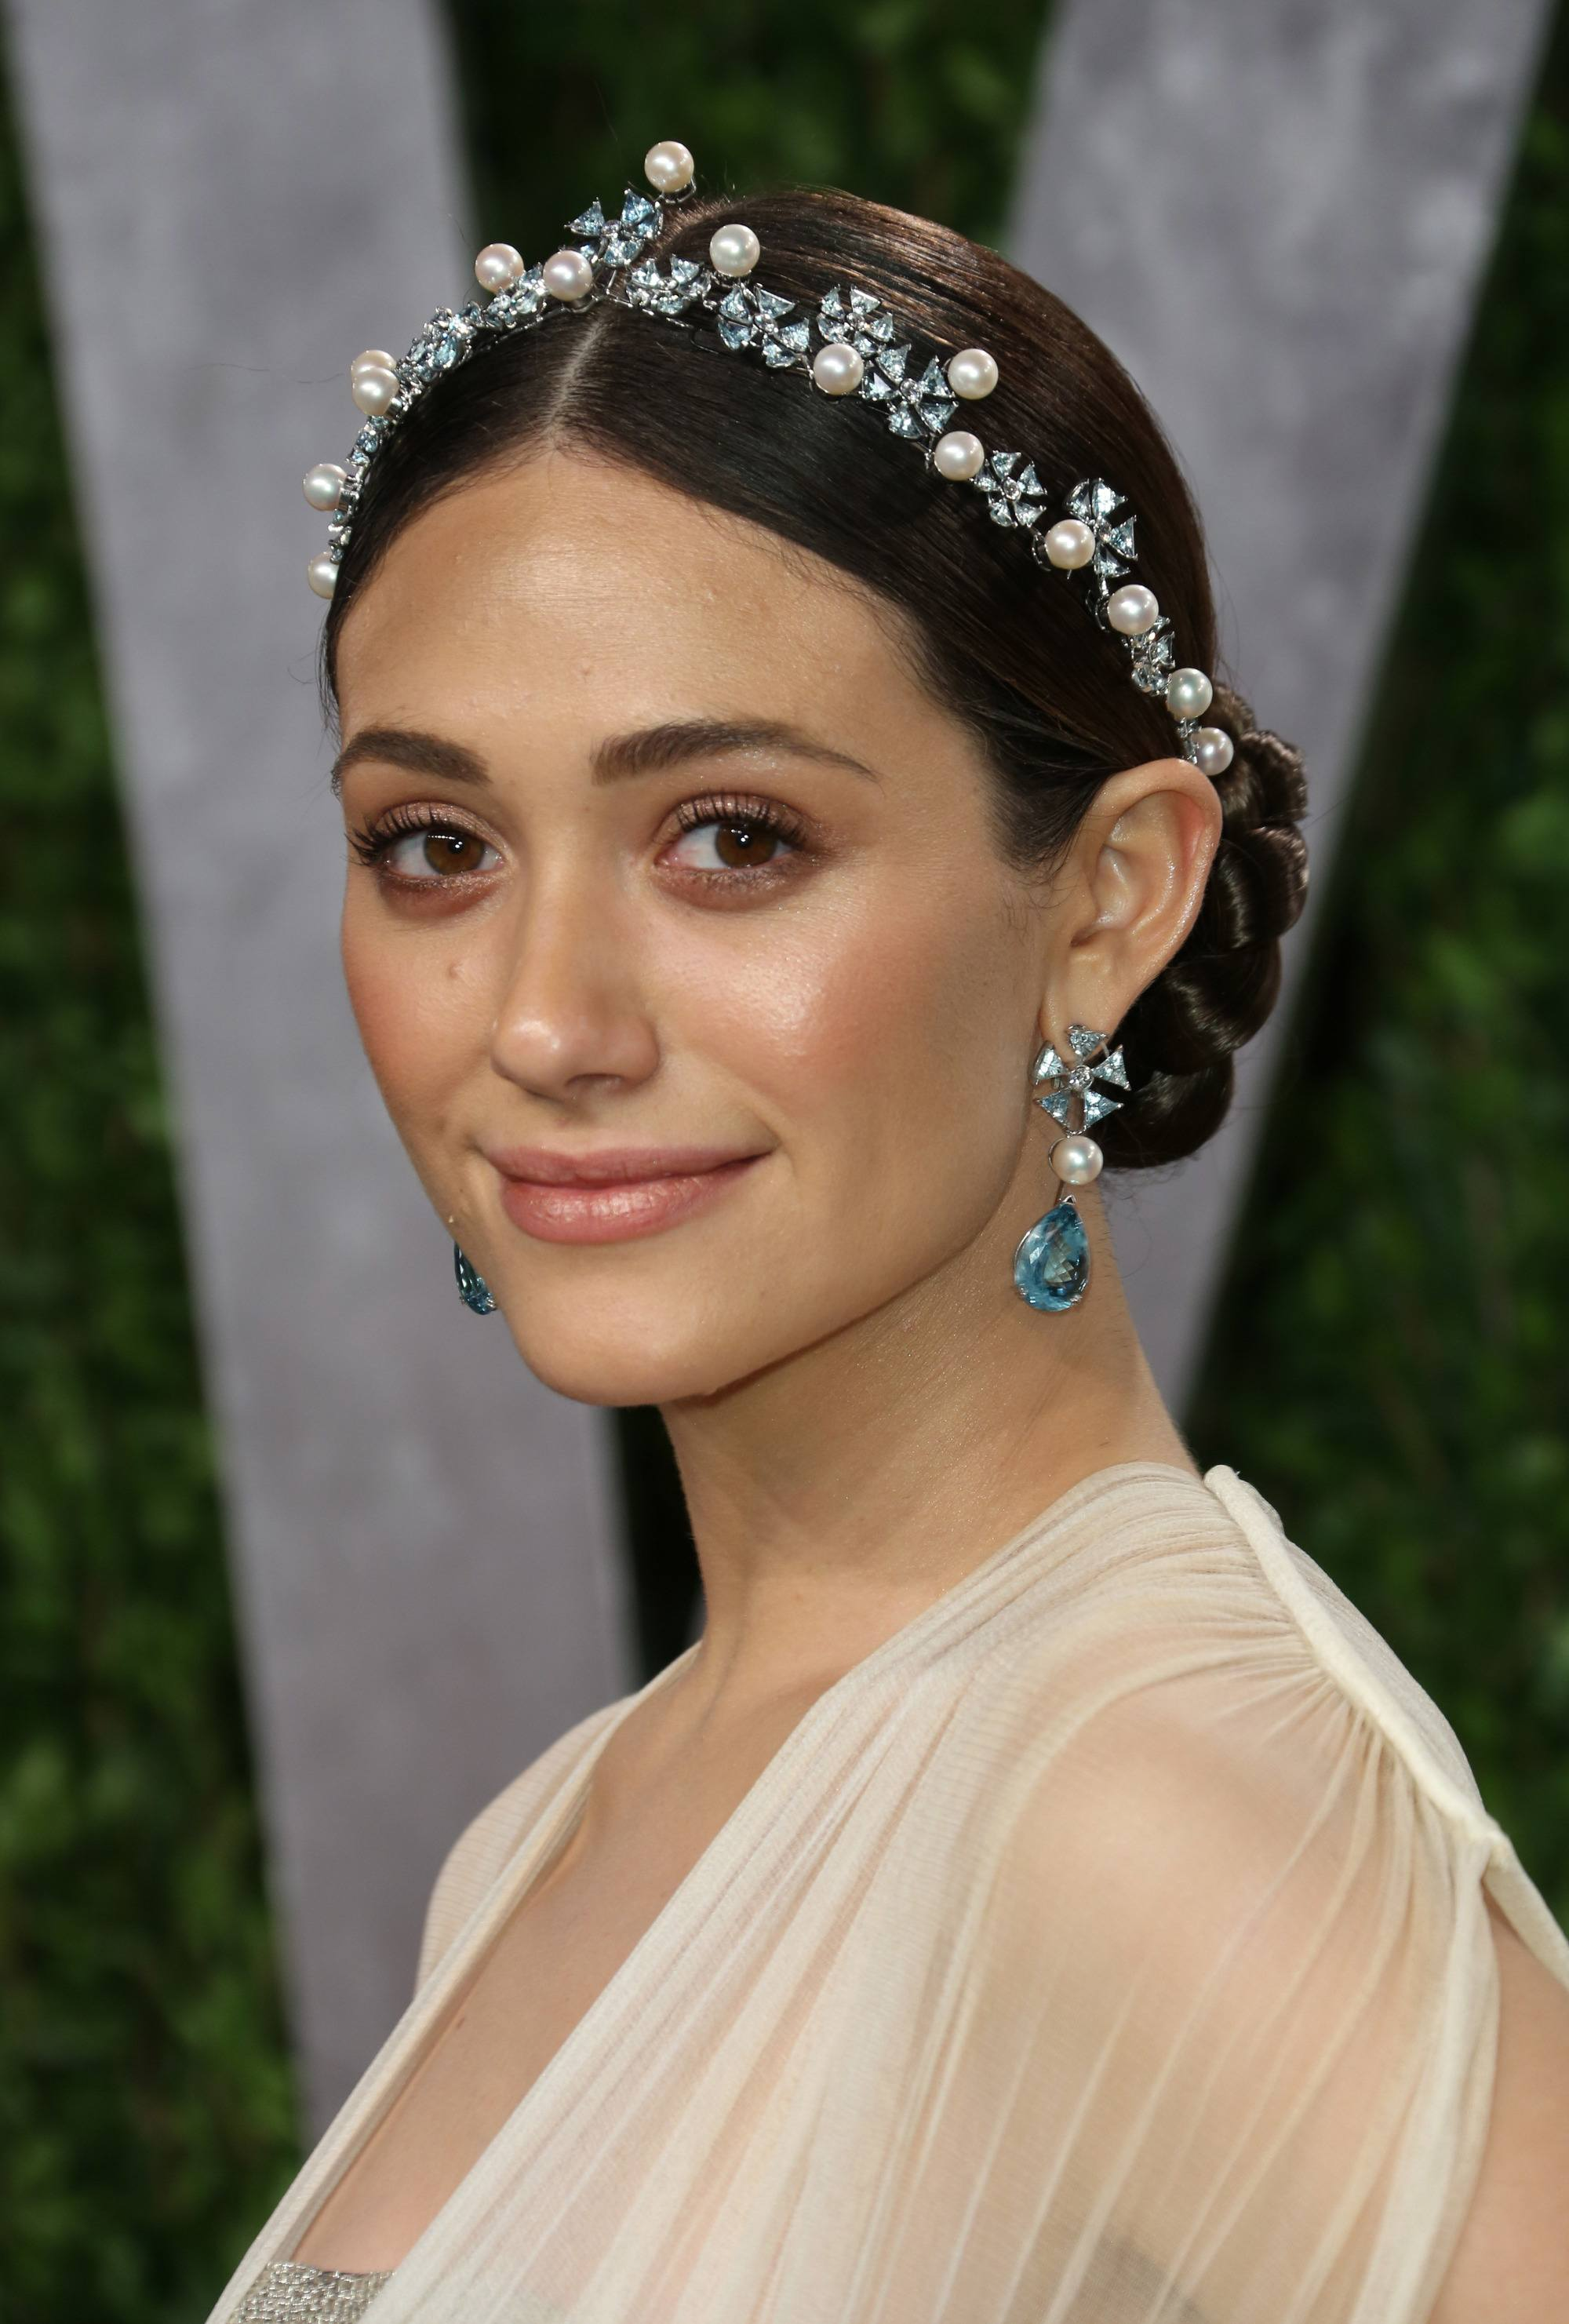 close up shot of emmy rossum with braided low bun and pearls in her hair on the red carpet